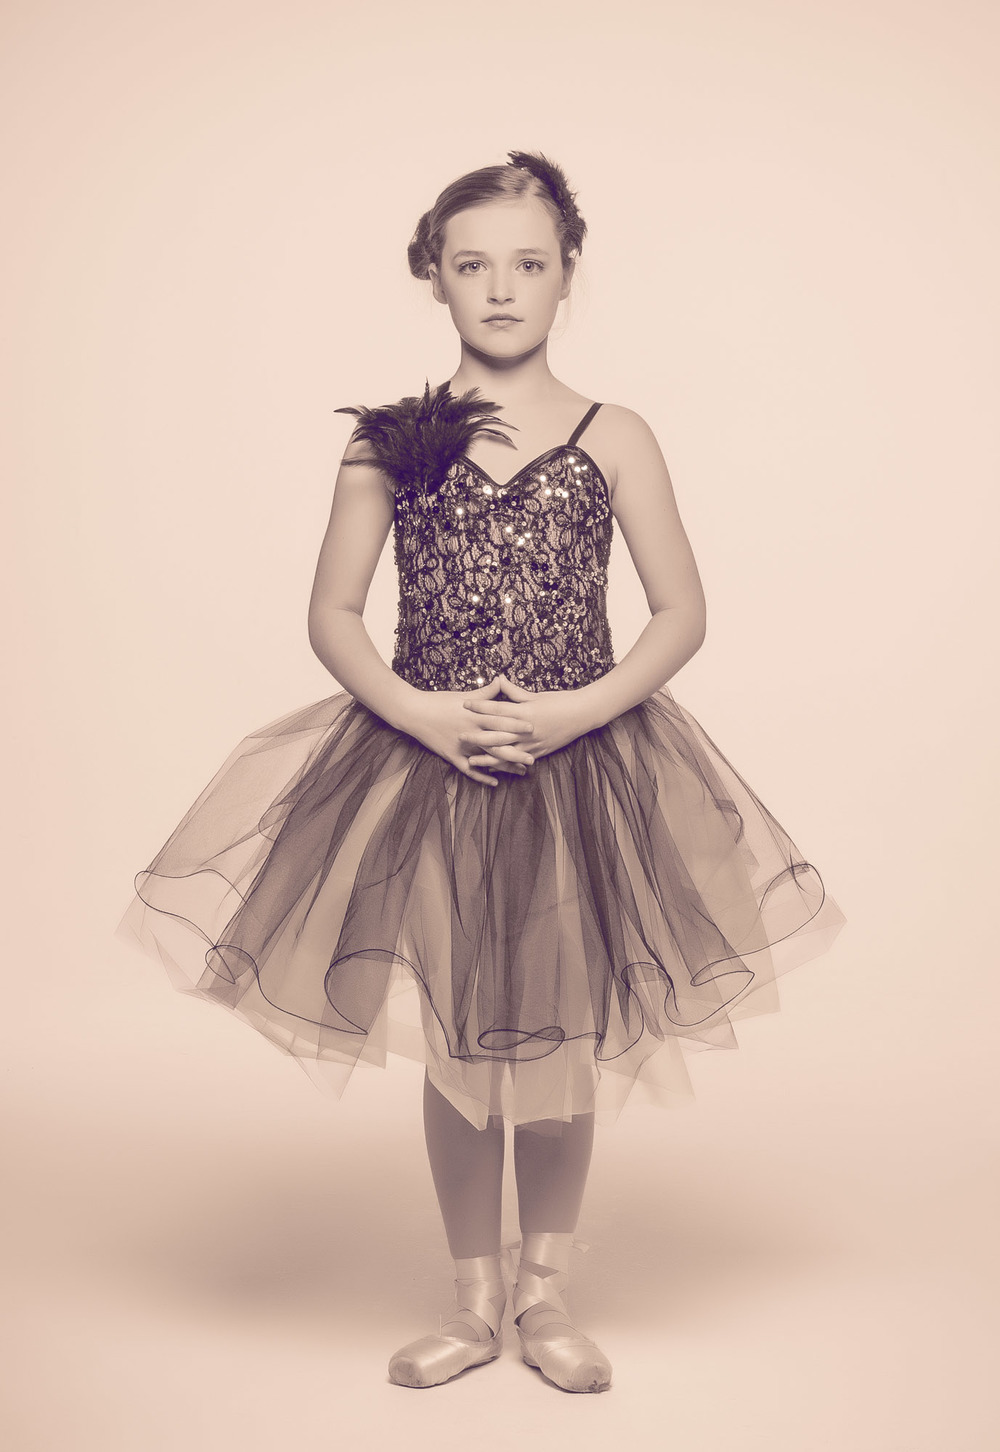 Tiny Dancer Ballet Portrait